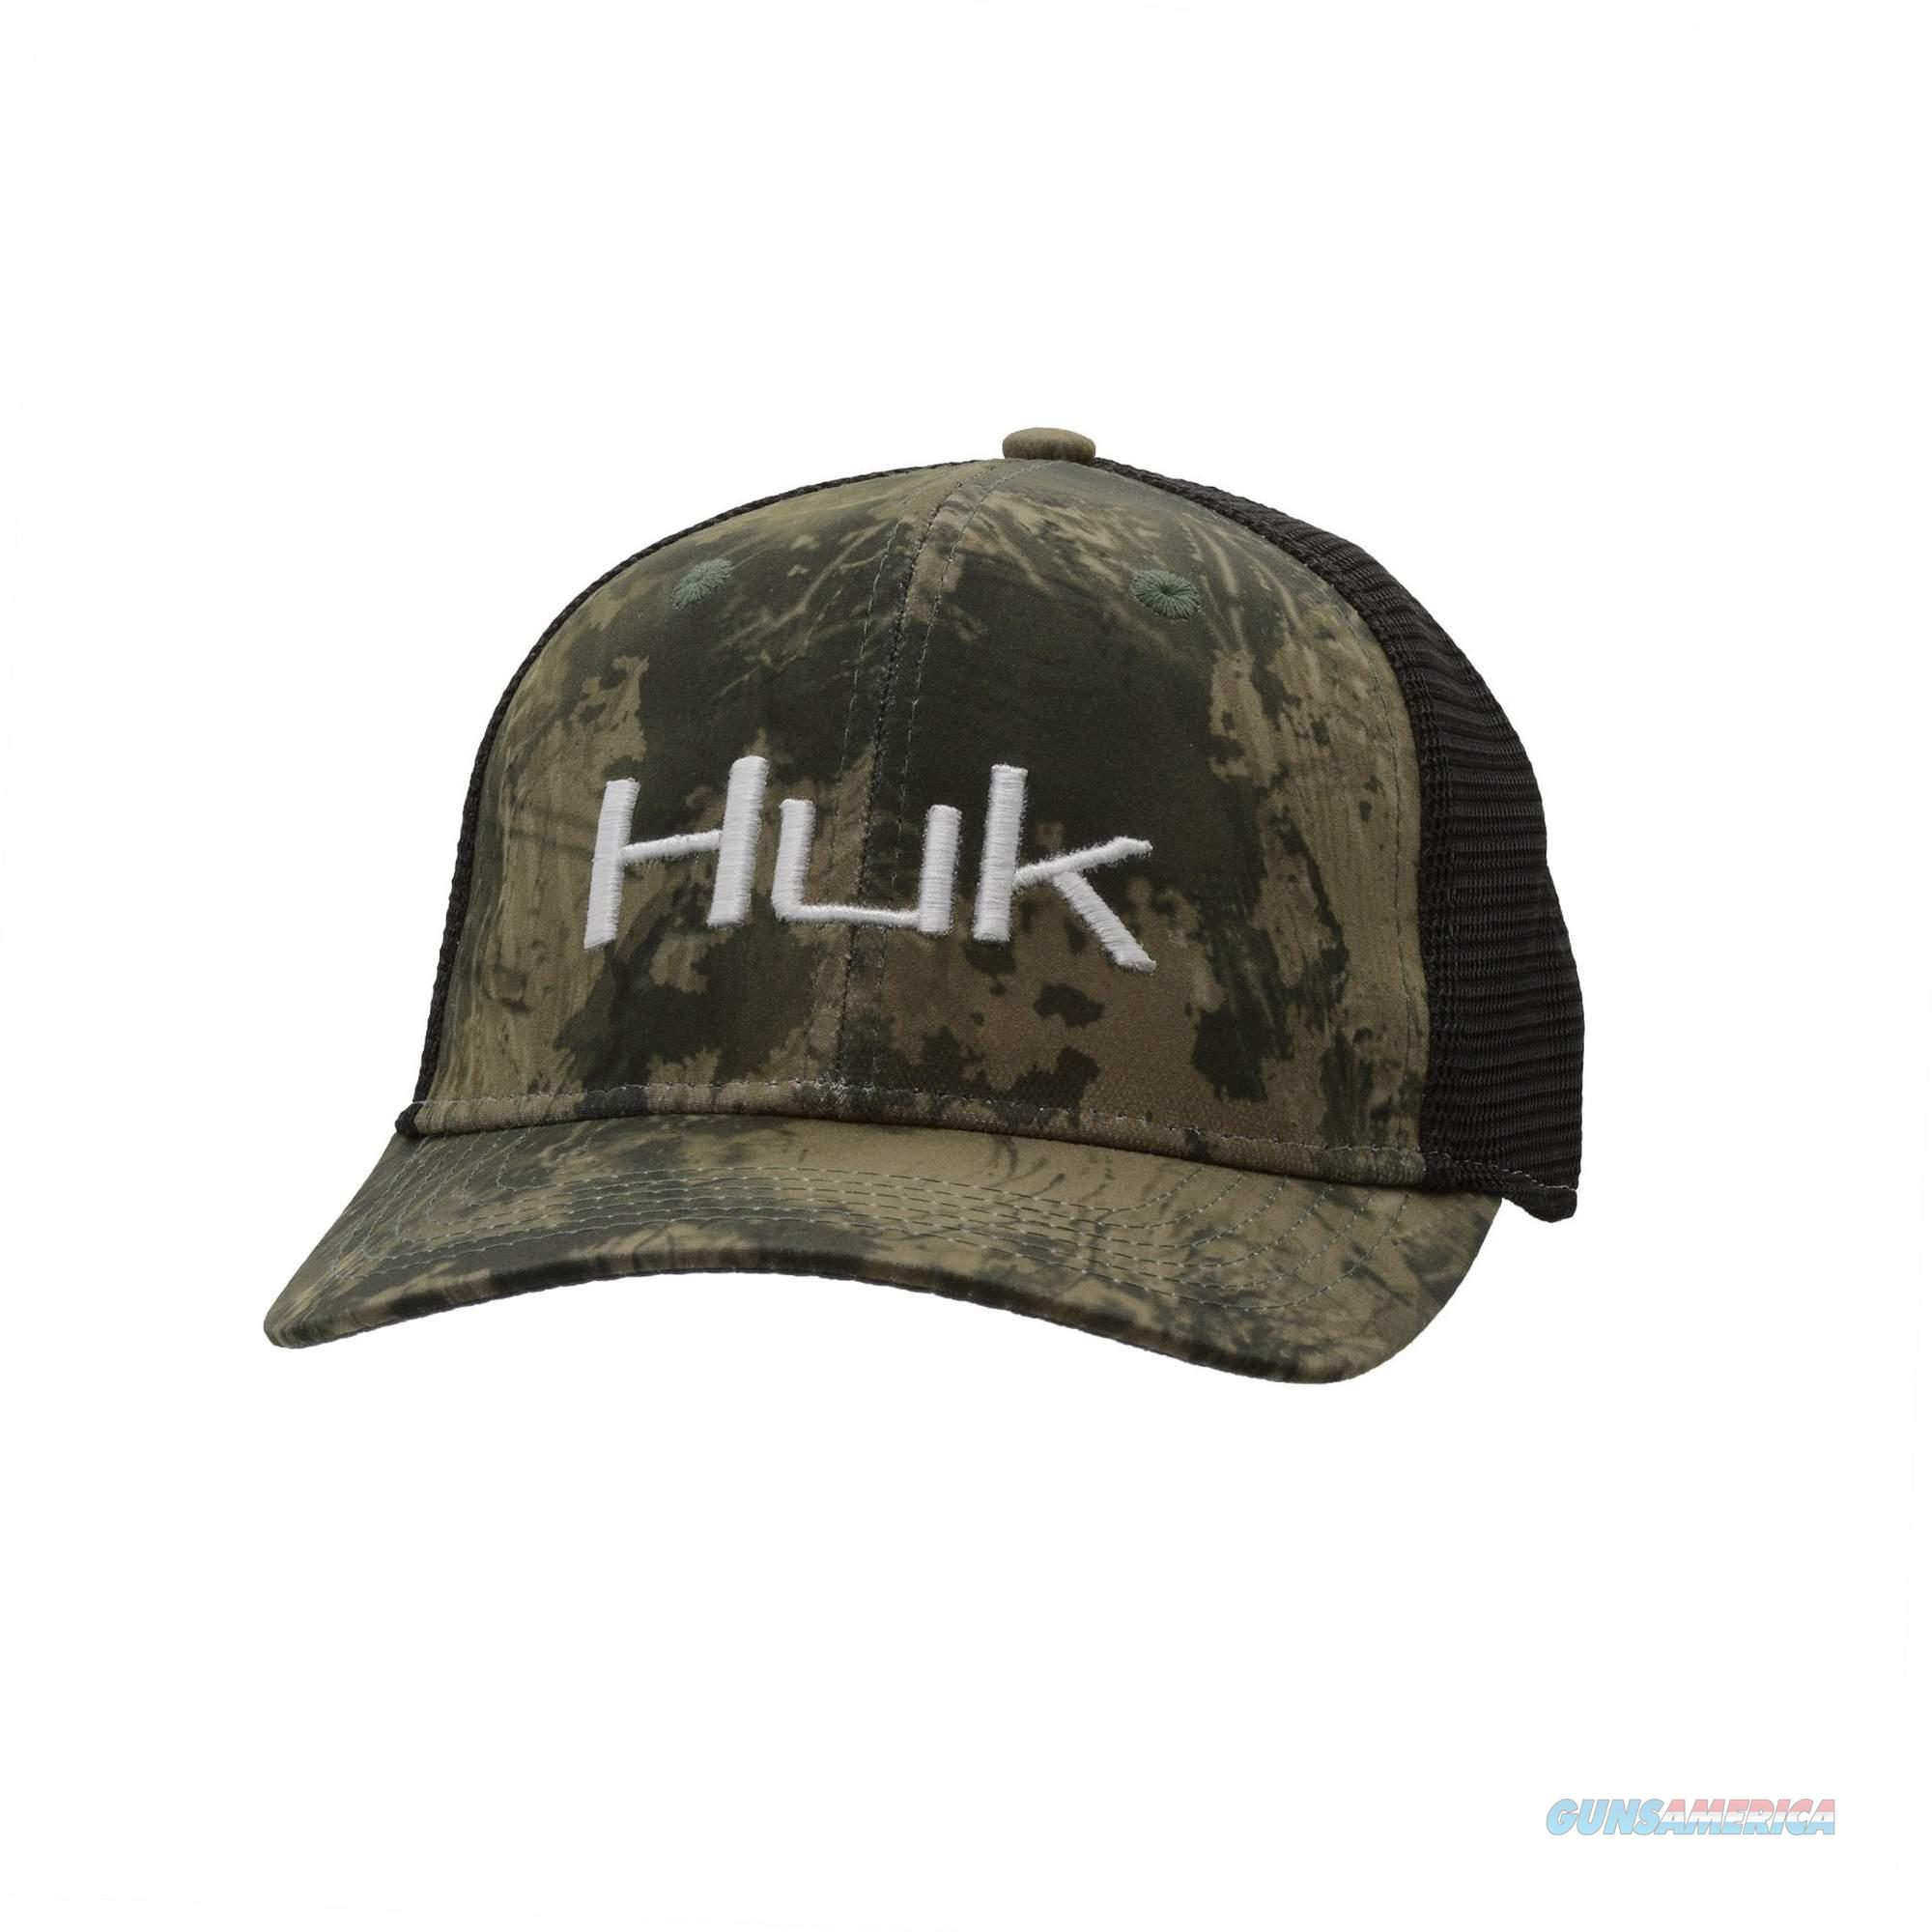 Huk Camo Trucker Hat Camo  Non-Guns > Hunting Clothing and Equipment > Clothing > Shirts